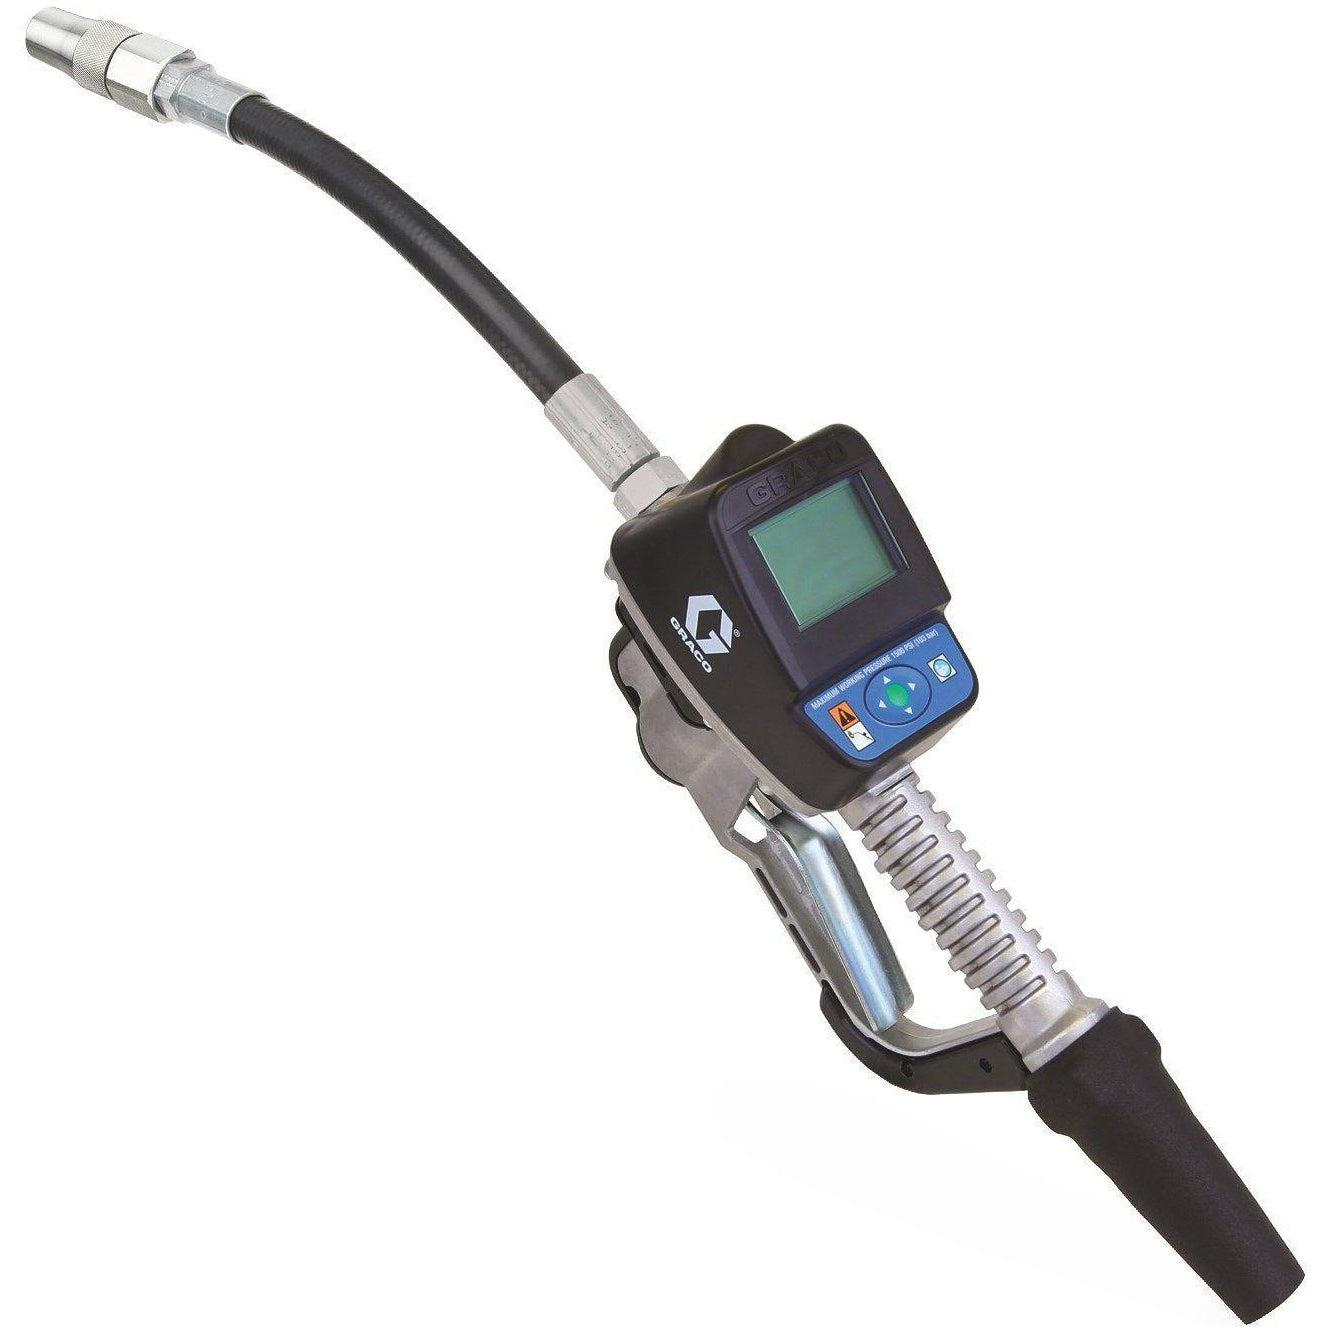 "24H121-Graco 24H121 Sdp15 Series Electronic Preset Oil/Anti-Freeze Meter - Flexible Extension - 3/4"" Inlet - Bspt-Order-Online-Fireball-Equipment"